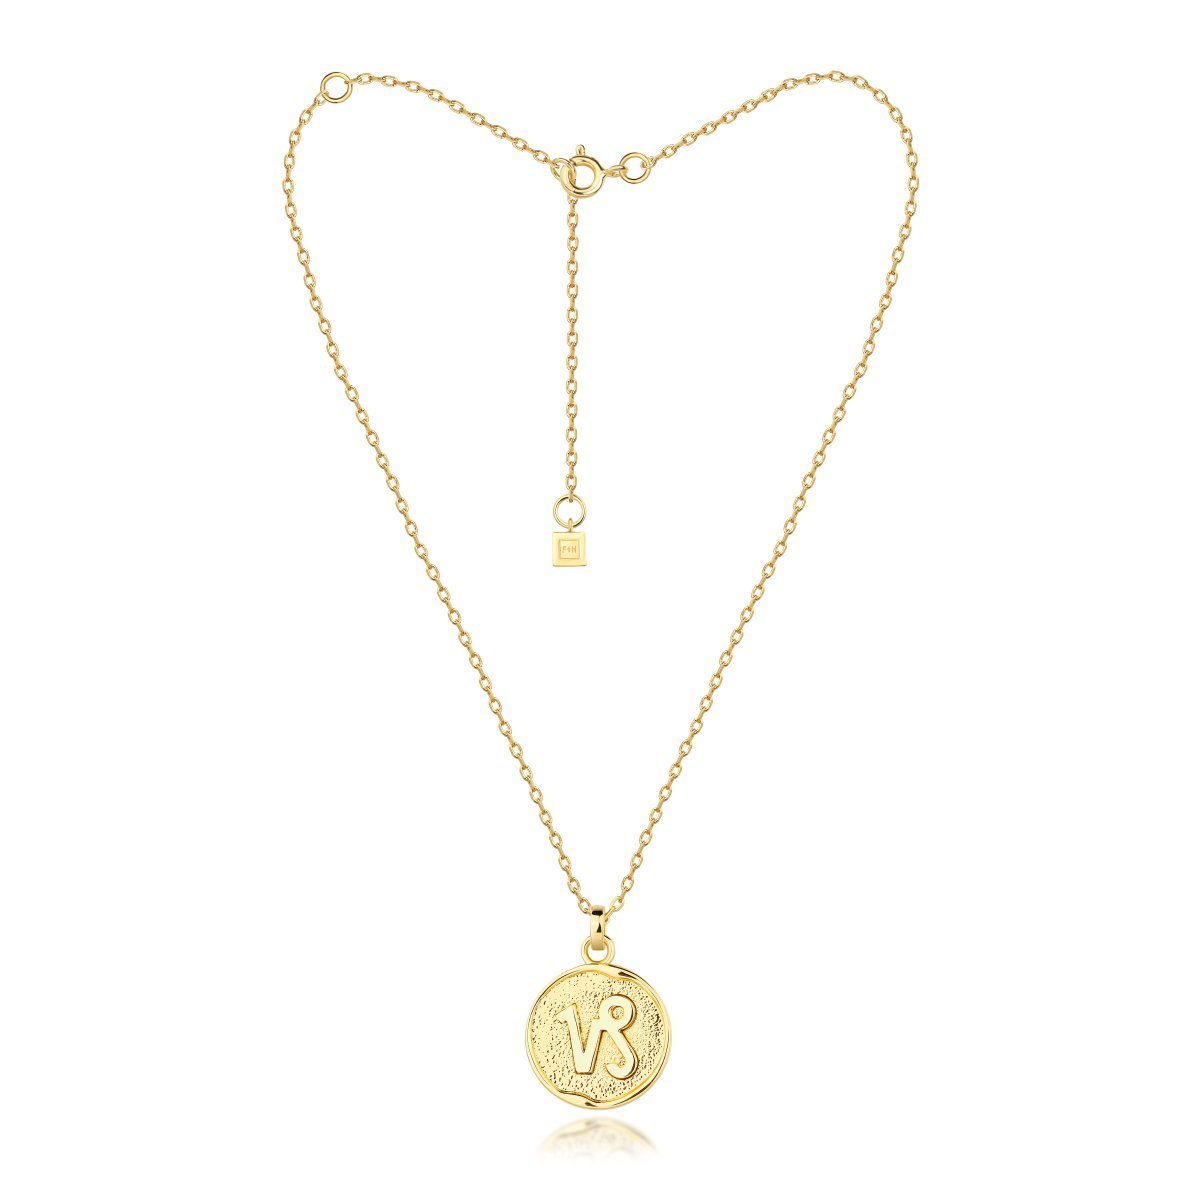 f + h jewellery - capricorn necklace - gold